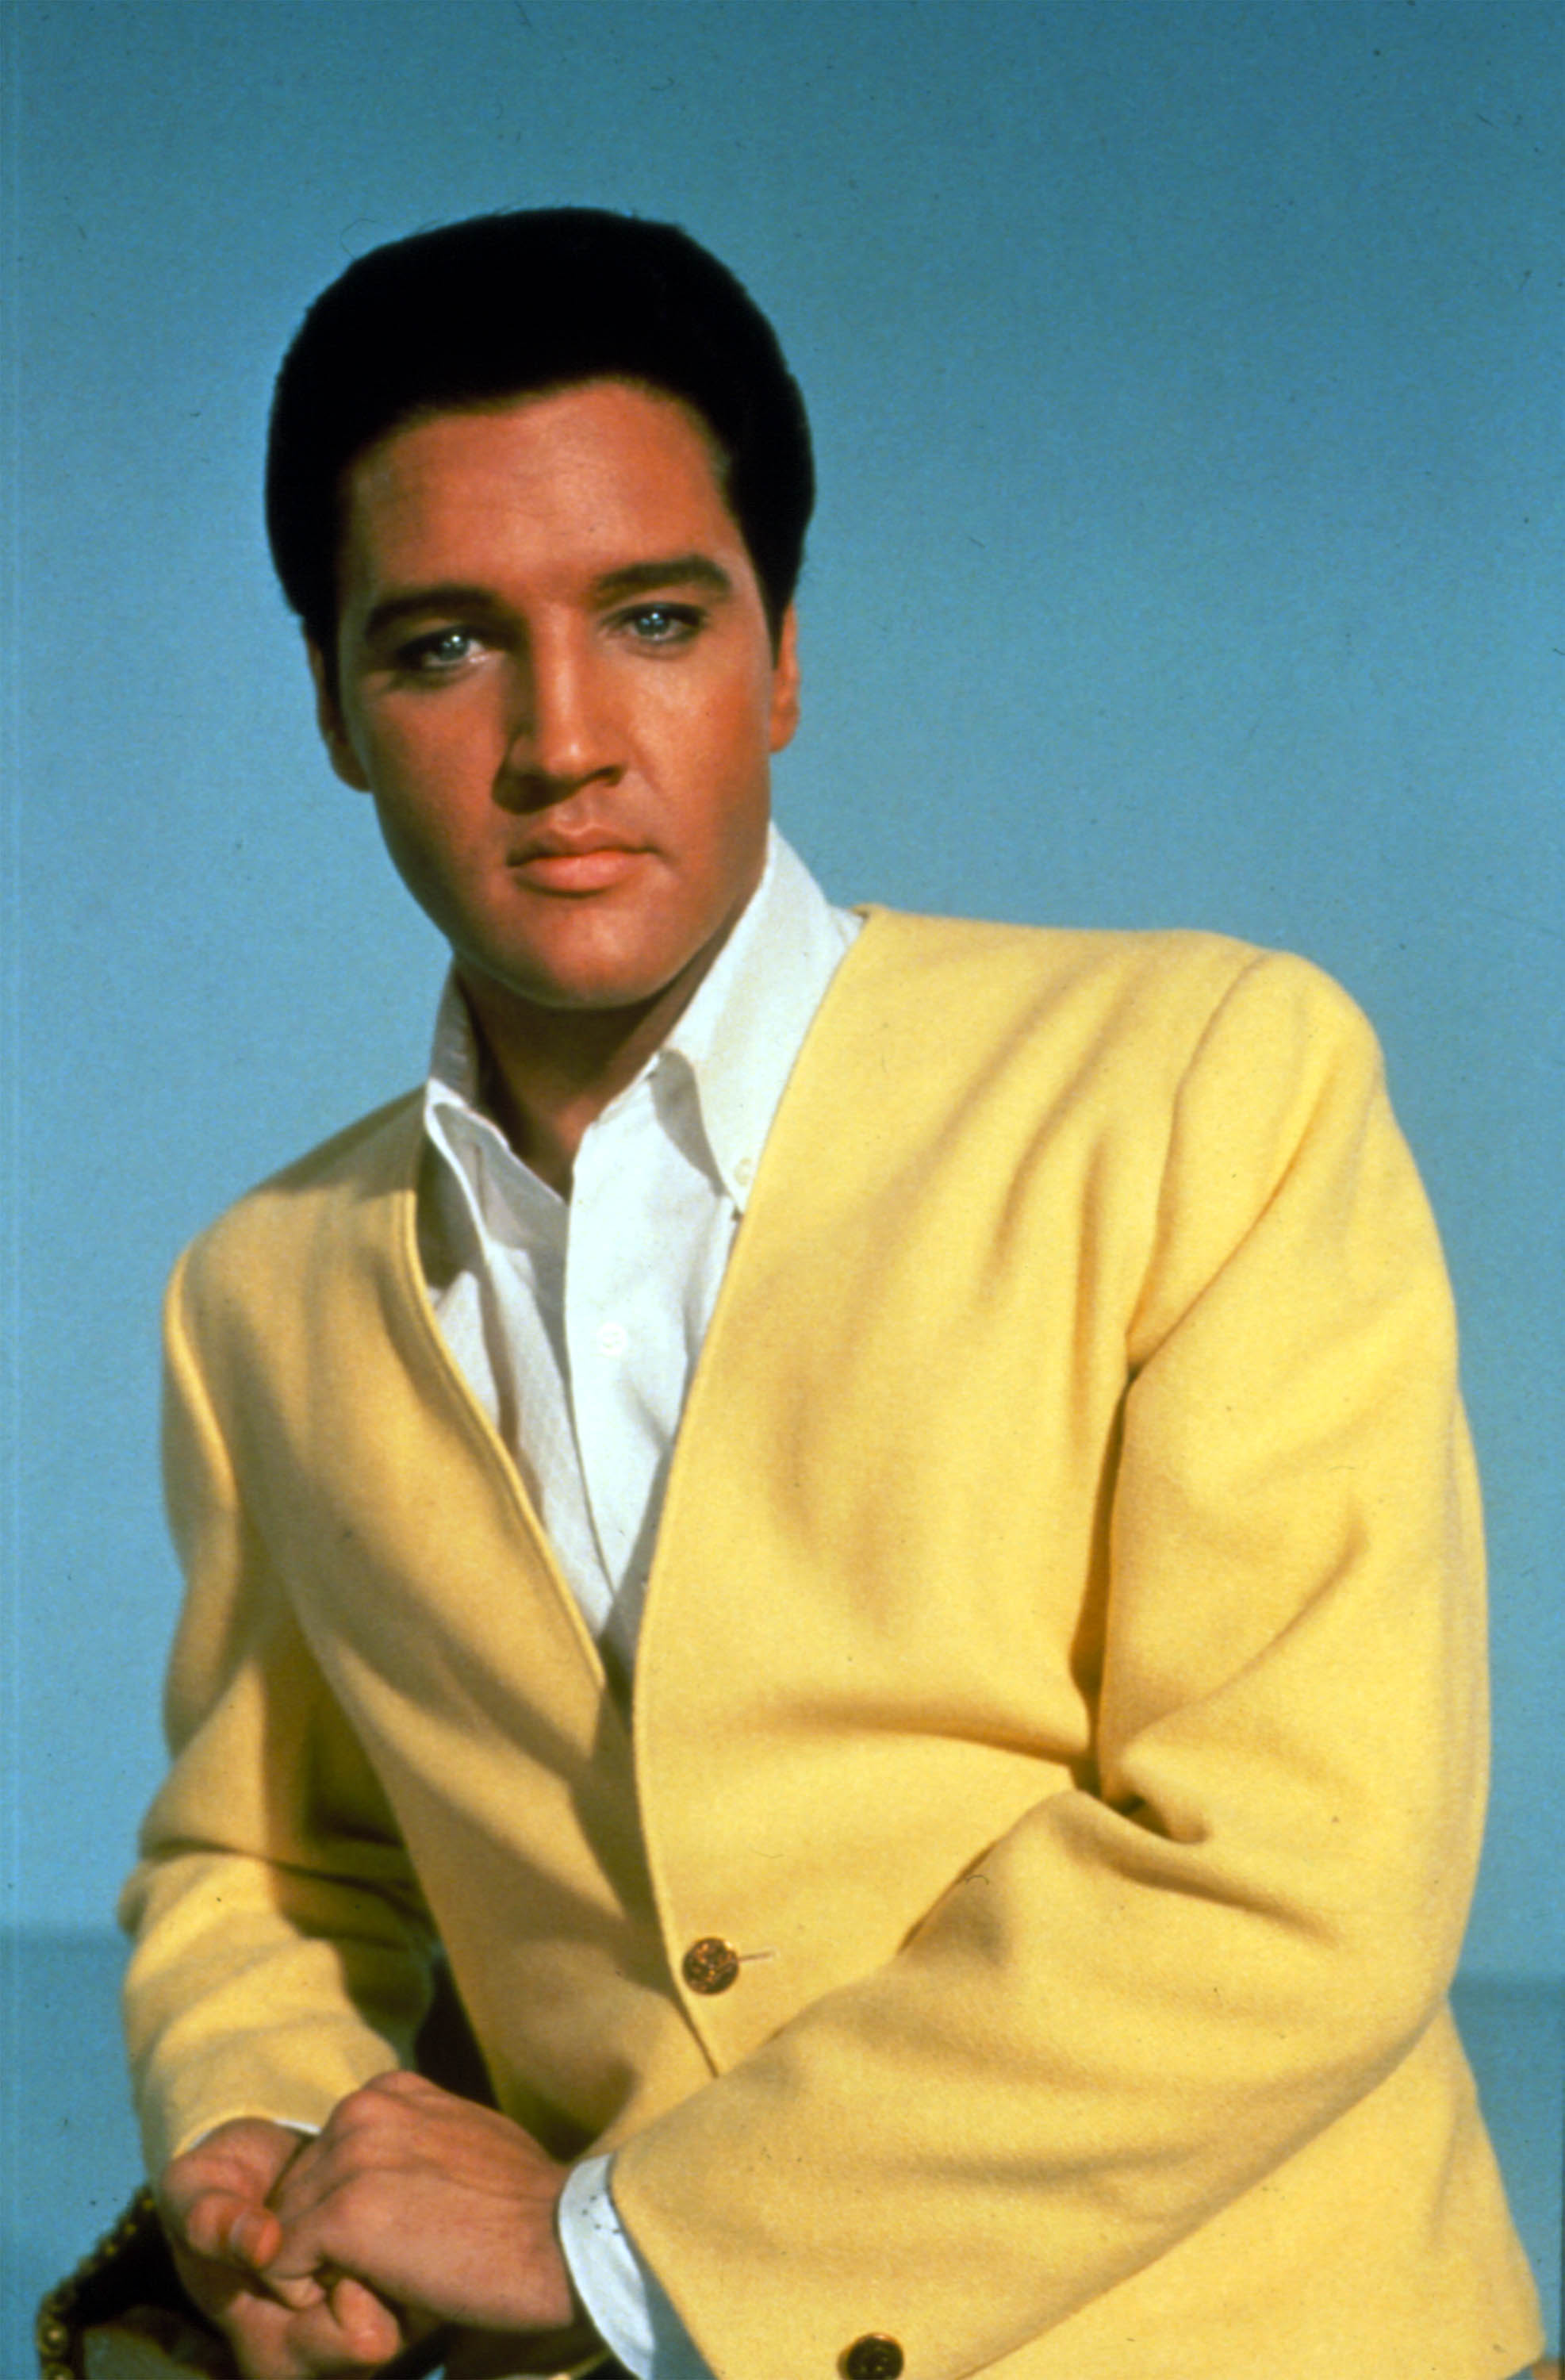 """An old portrait of """"Can't Help Falling in Love"""" singer Elvis Presley. 